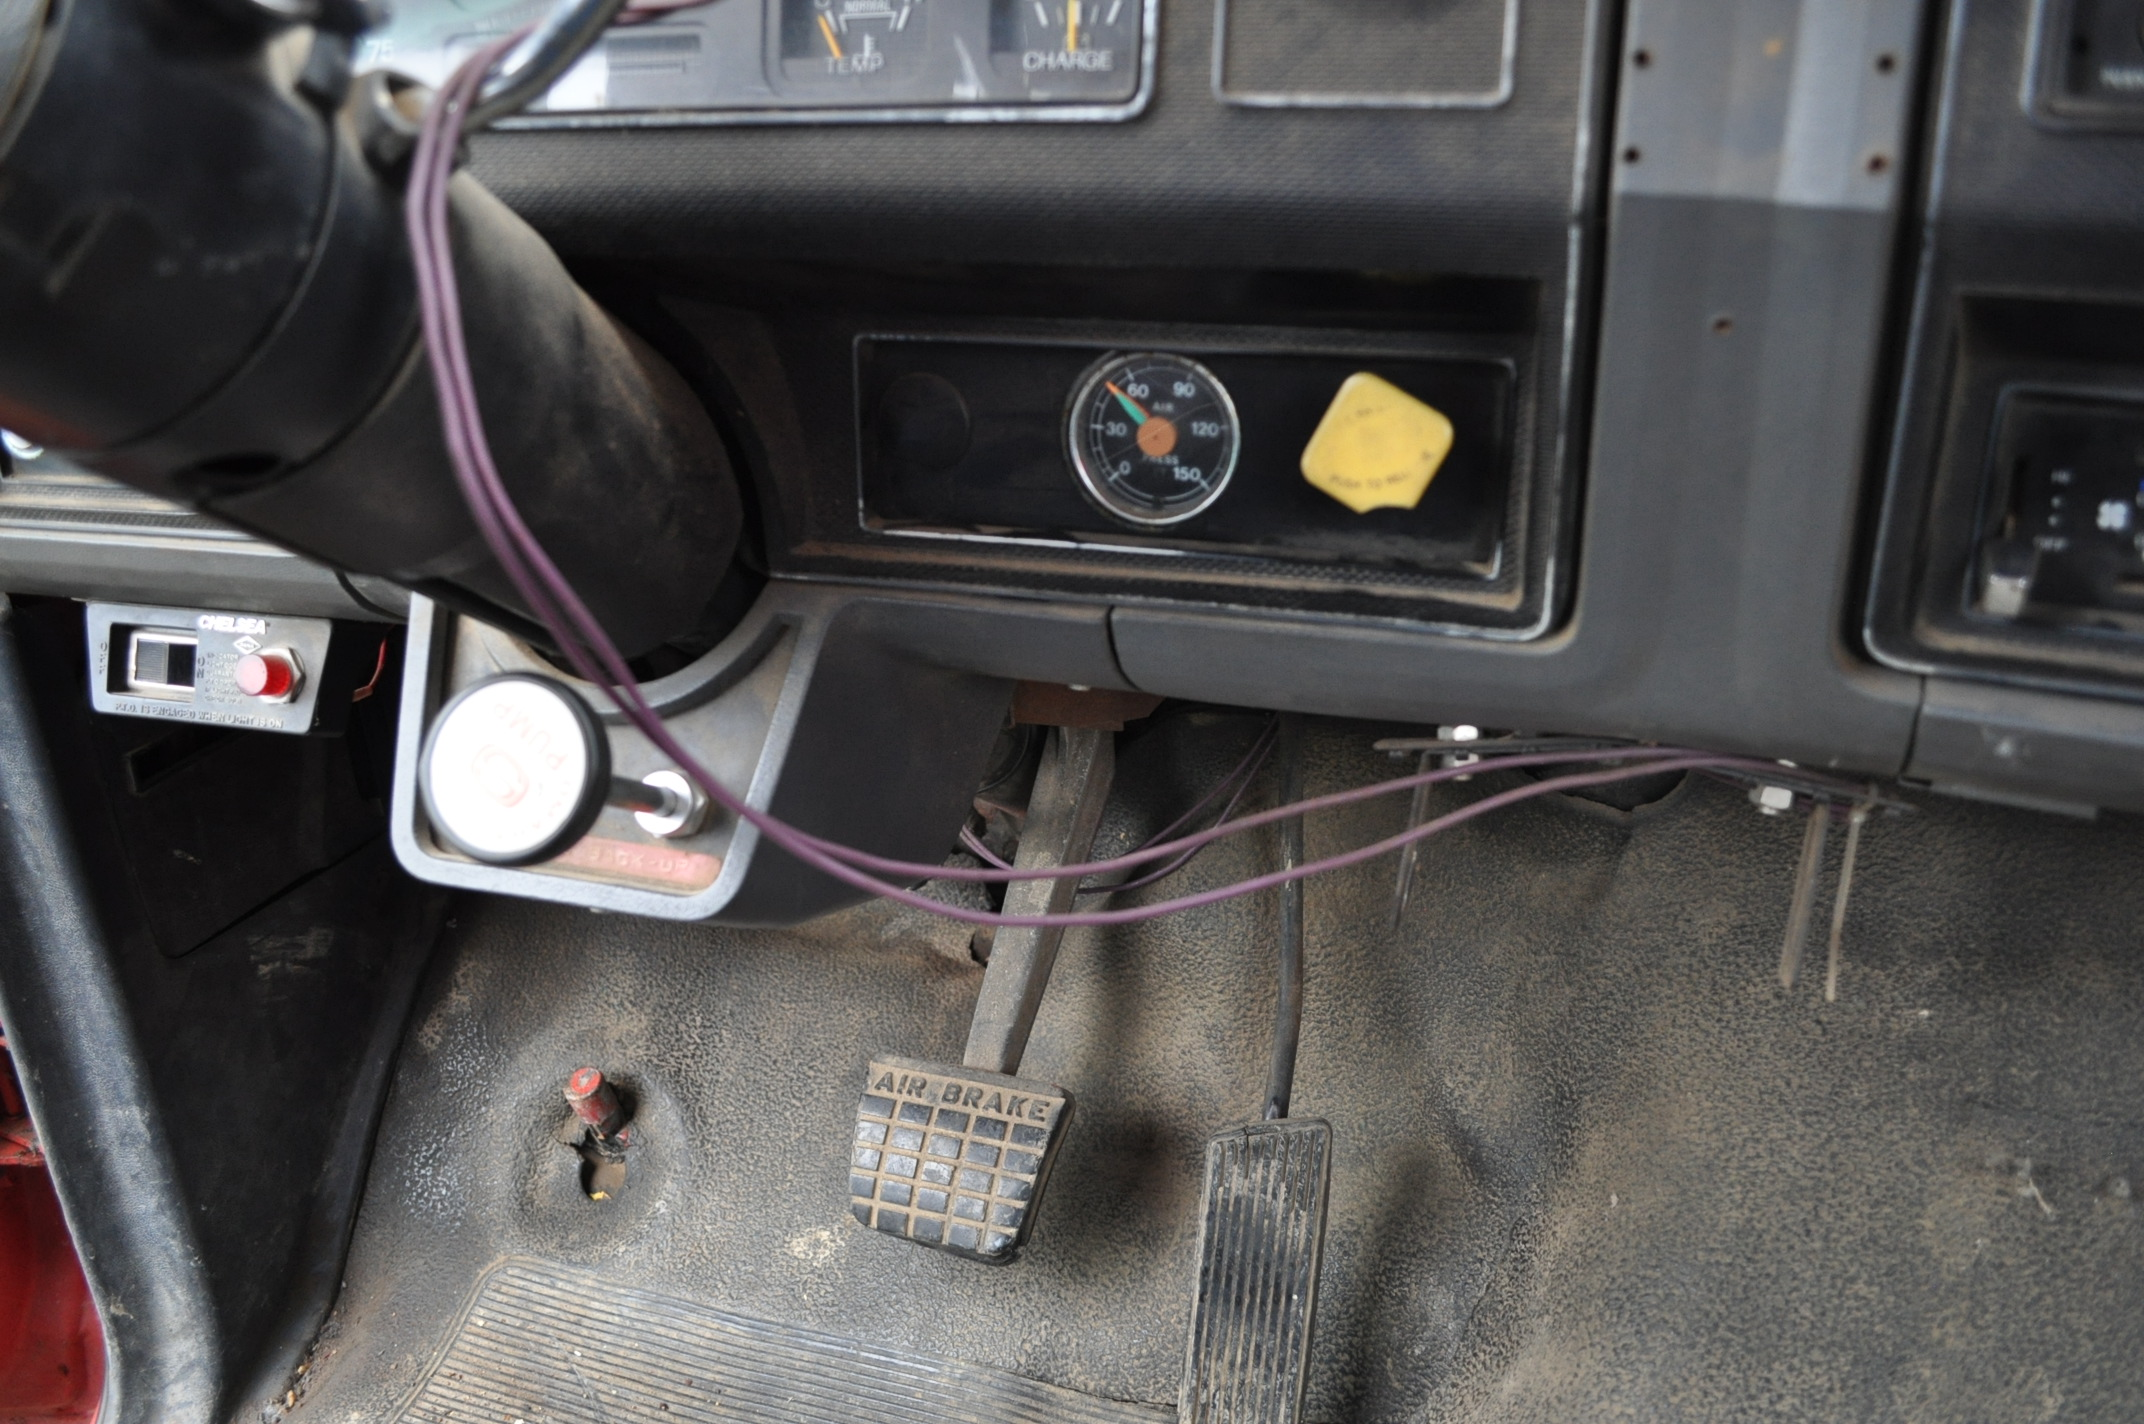 1988 Ford F800 grain truck, single axle, 427 V-8, auto, 11 R 22.5 tires, 16' Omaha Standard bed, - Image 14 of 17